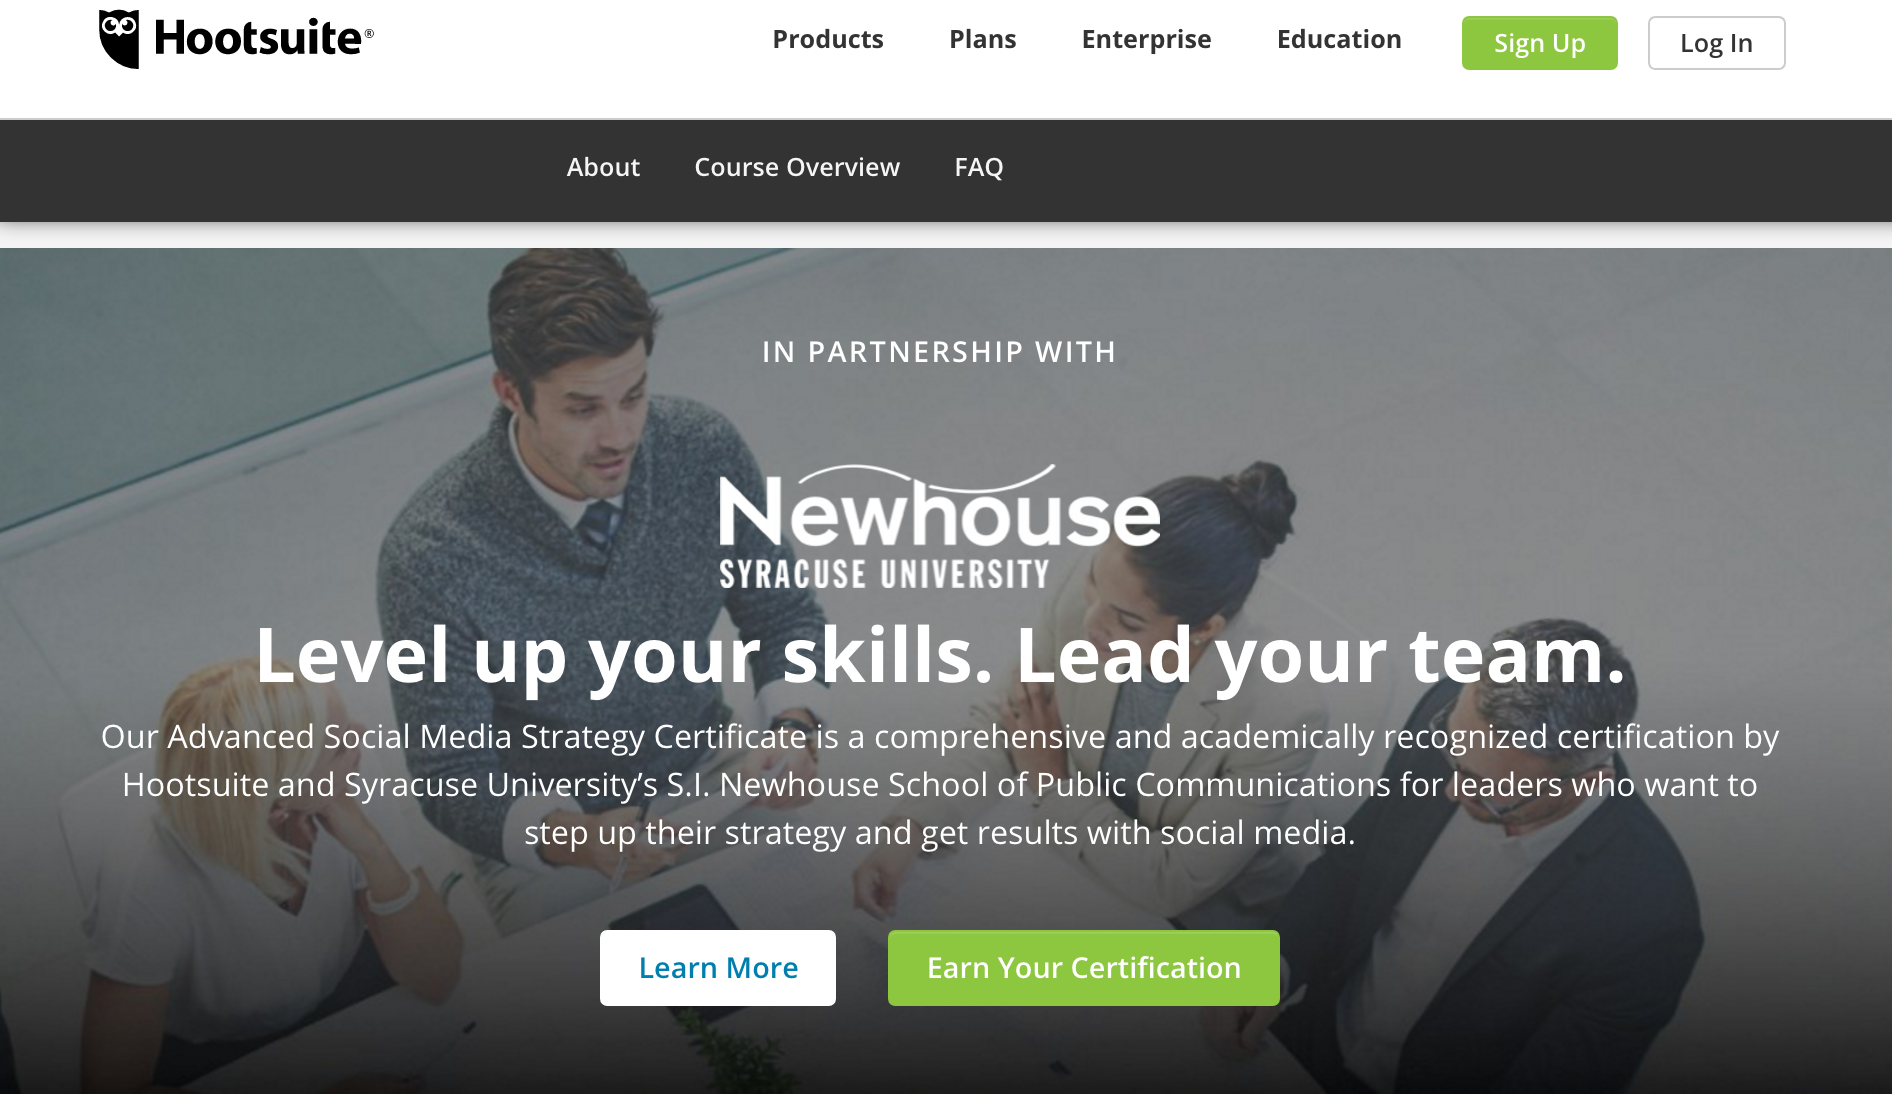 Hootsuite's Advanced Social Media Strategy Certificate